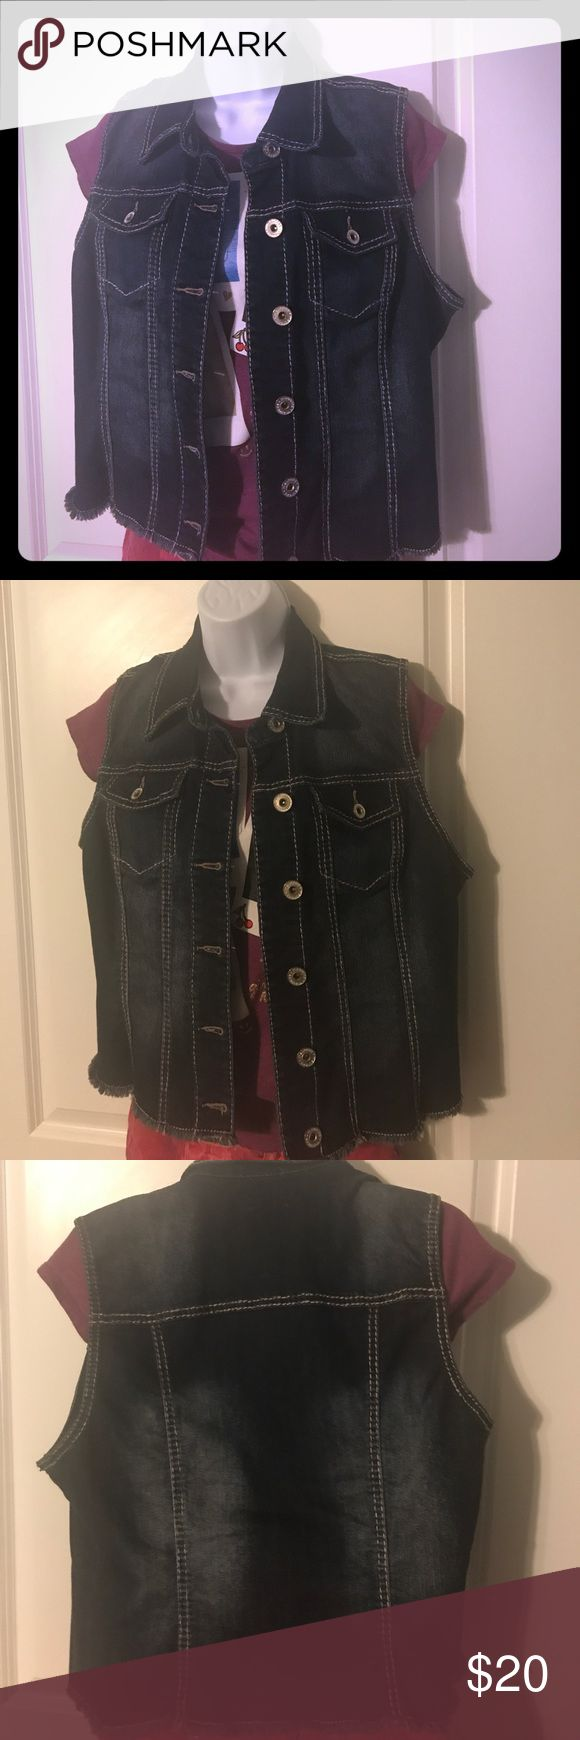 Maurice's fringe sleeveless jean jacket Super cute Maurice's sleeveless distressed jean jacket. This goes with anything! Maurices Jackets & Coats Jean Jackets